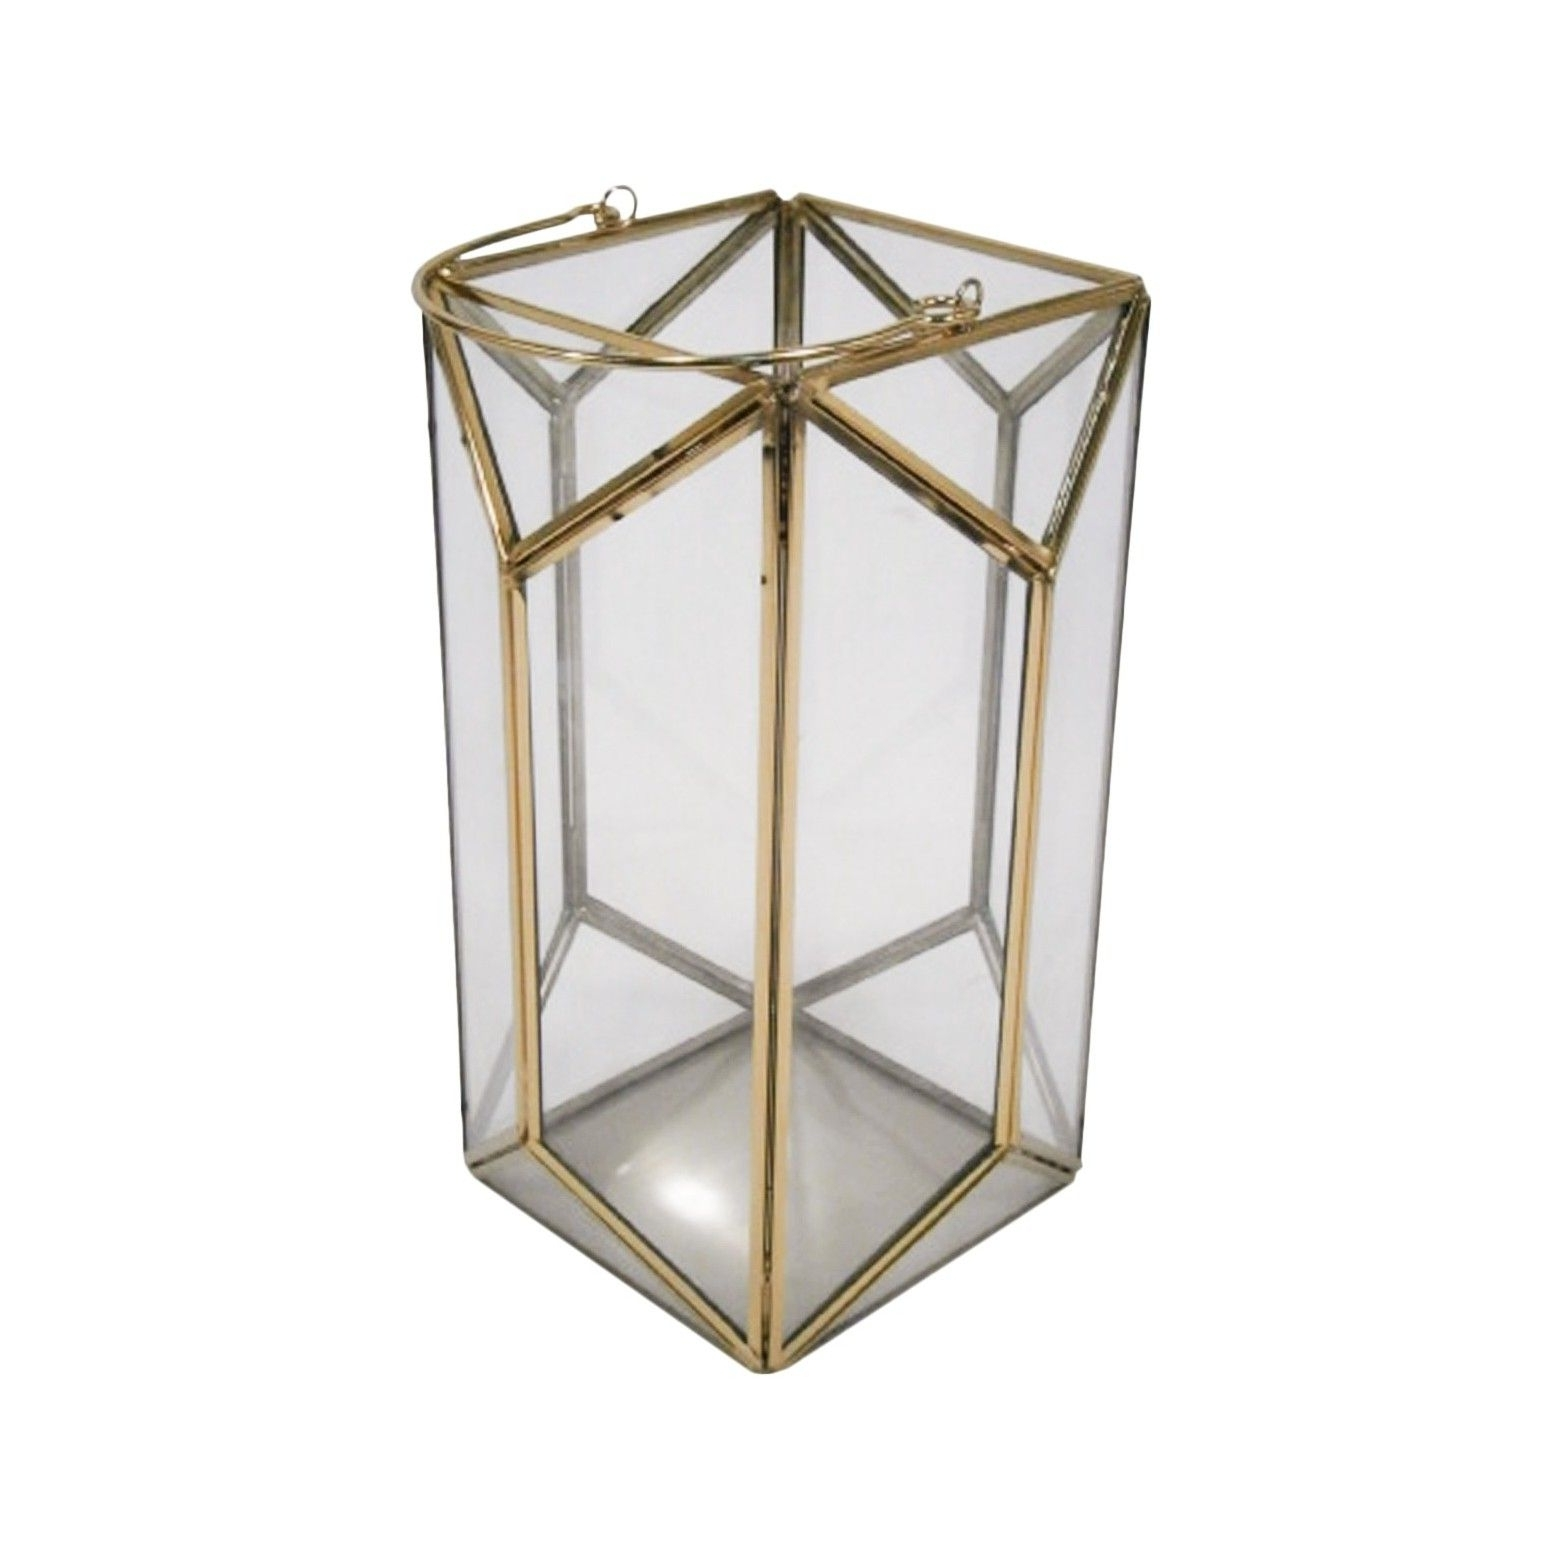 11 Outdoor Lantern Stainless Steel & Glass – Plated Gold – Threshold Pertaining To Well Known Gold Outdoor Lanterns (View 19 of 20)